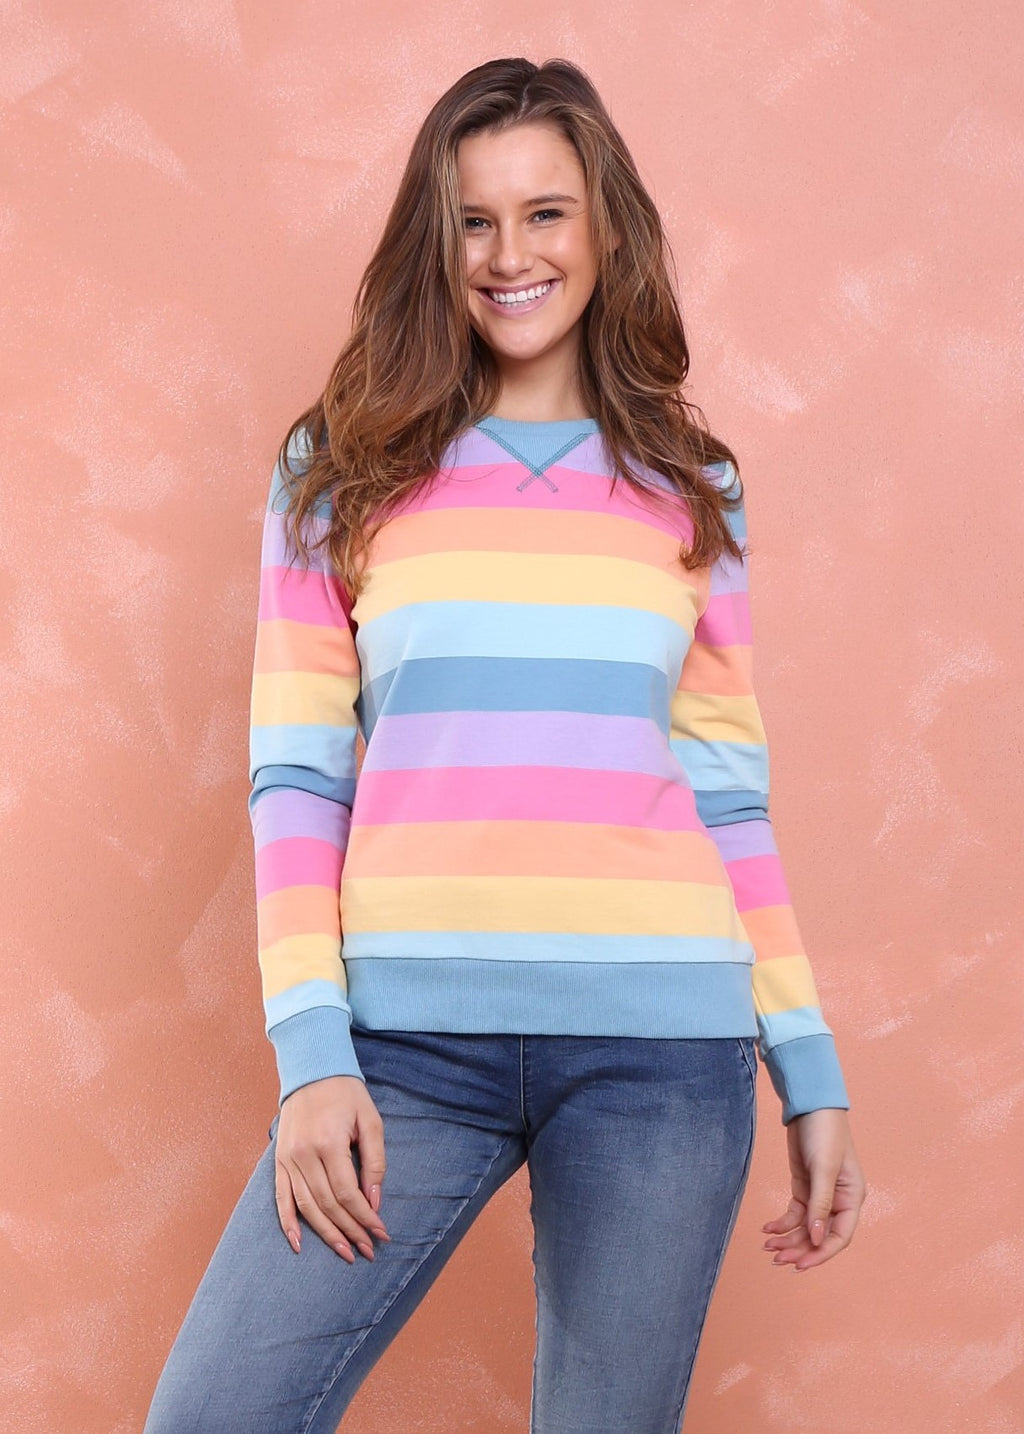 ALEX SWEATER - RAINBOW STRIPE - MARK DOWN MADNESS